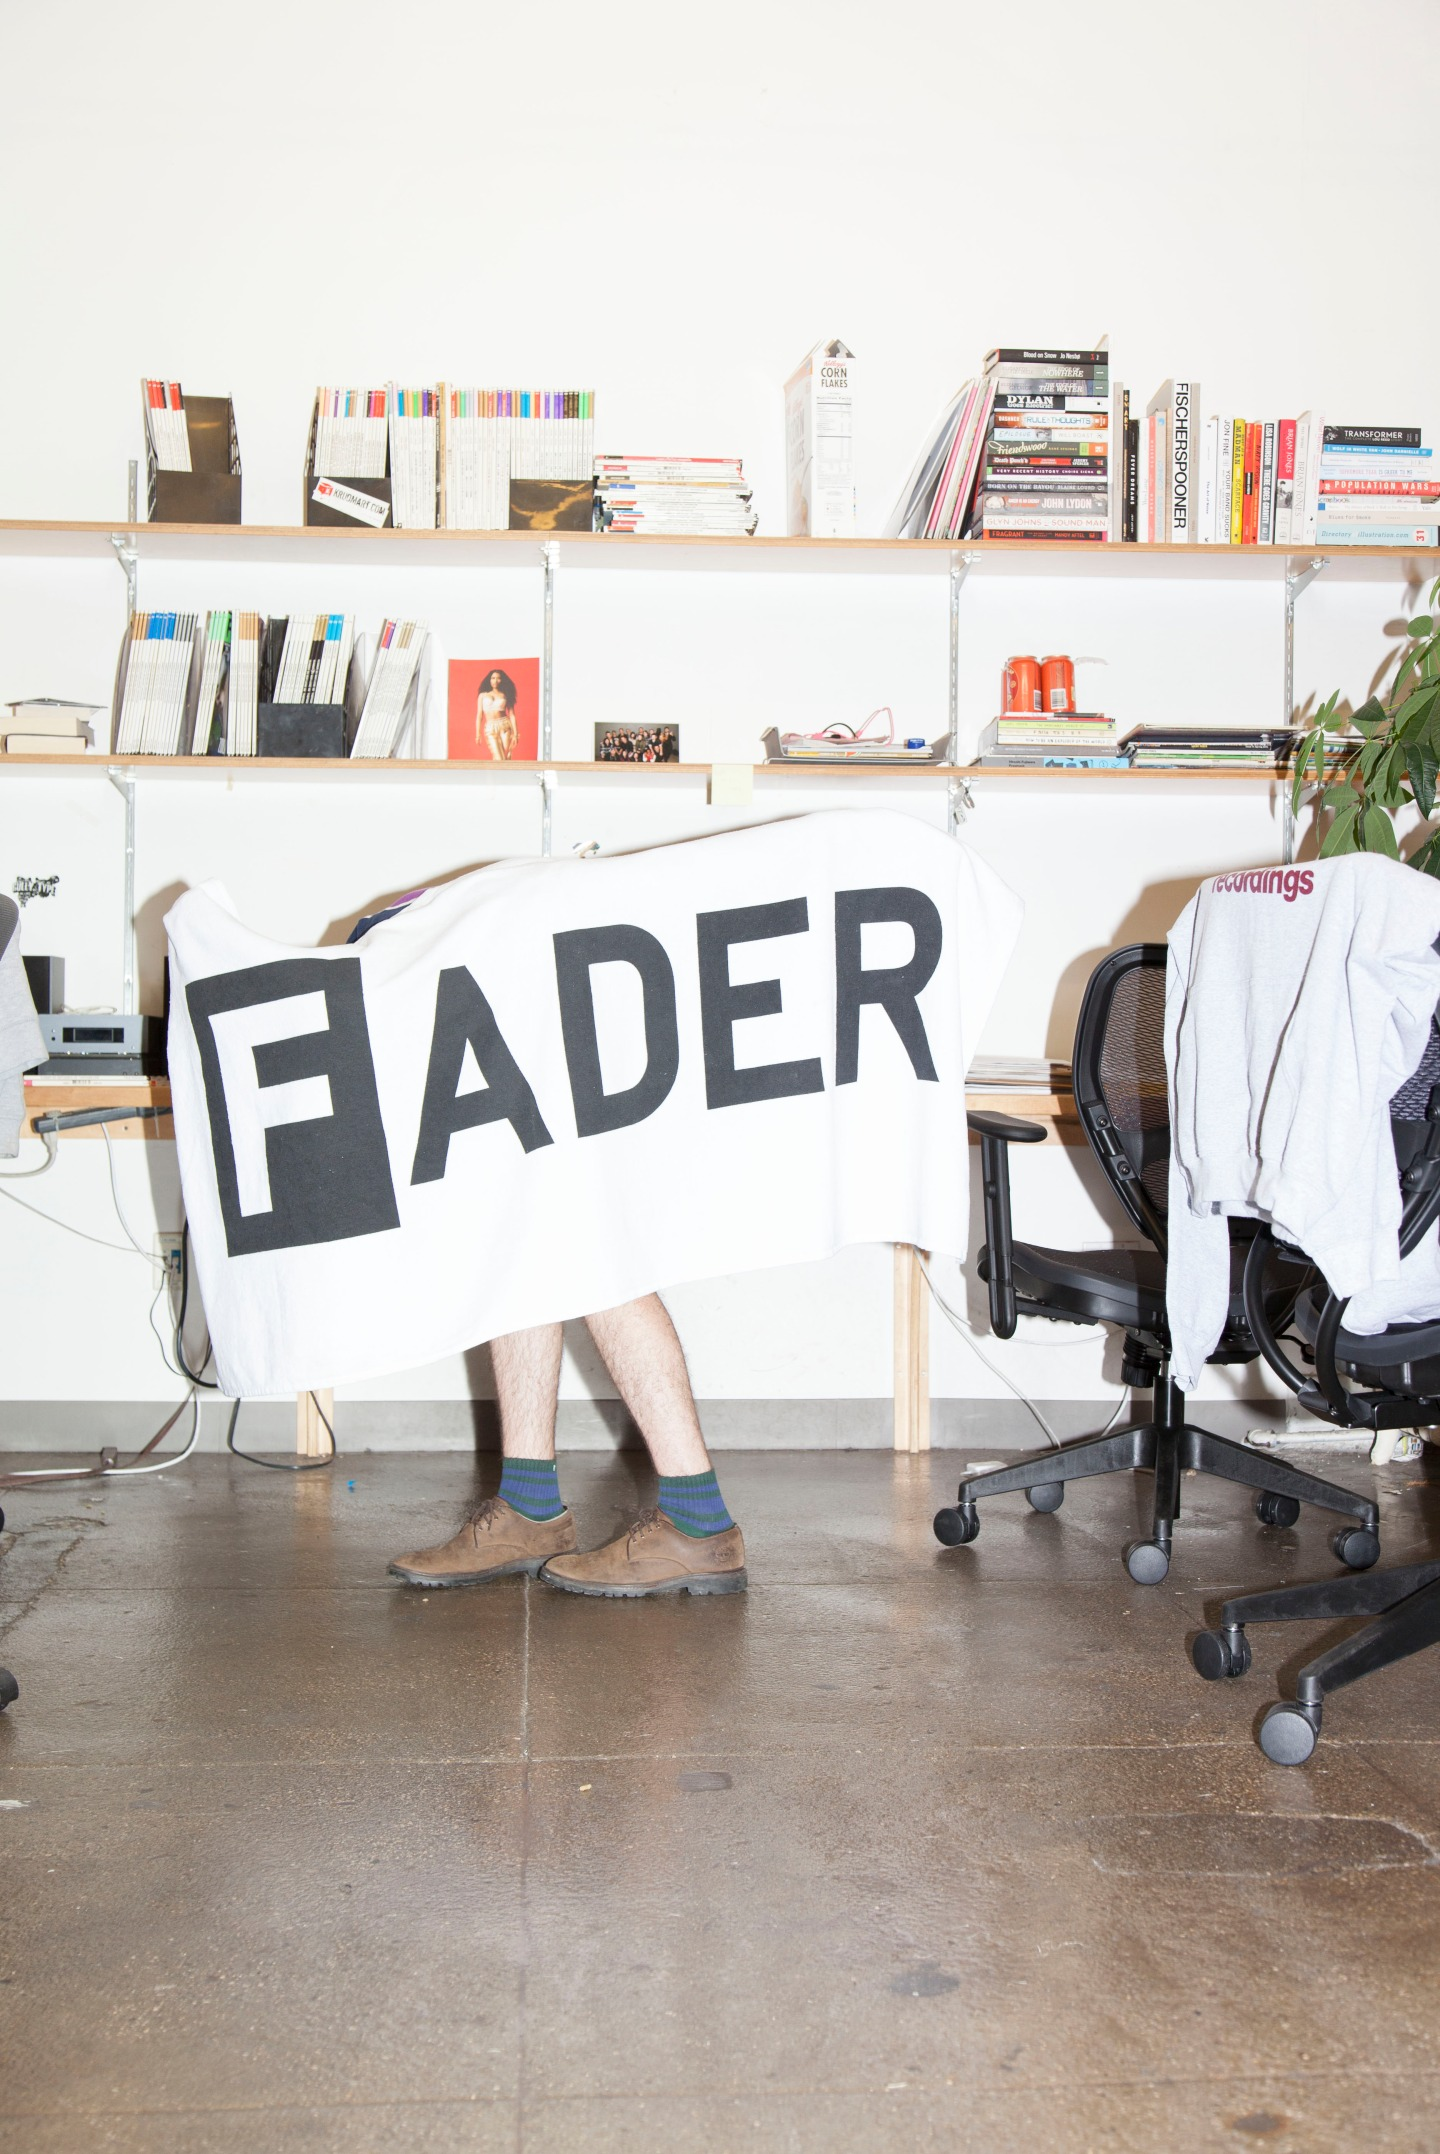 I Trust You: The Oral History Of The FADER